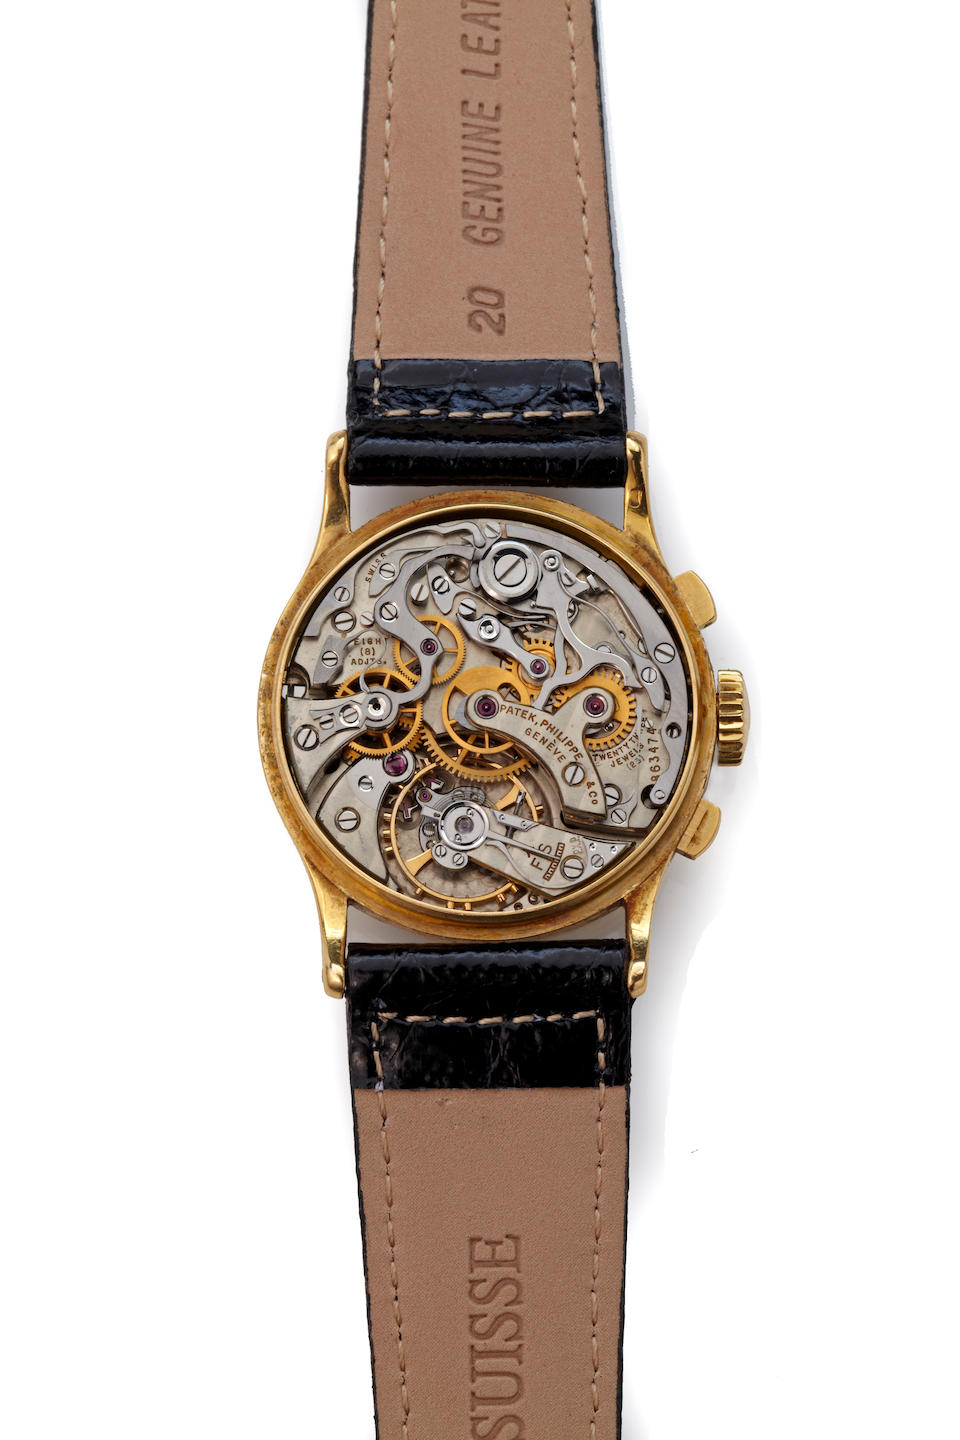 Patek Philippe. A fine 18K gold wrist chronograph with breguet numeralsRef. 130, movement No. 863474, case No. 638214, sold in 1945